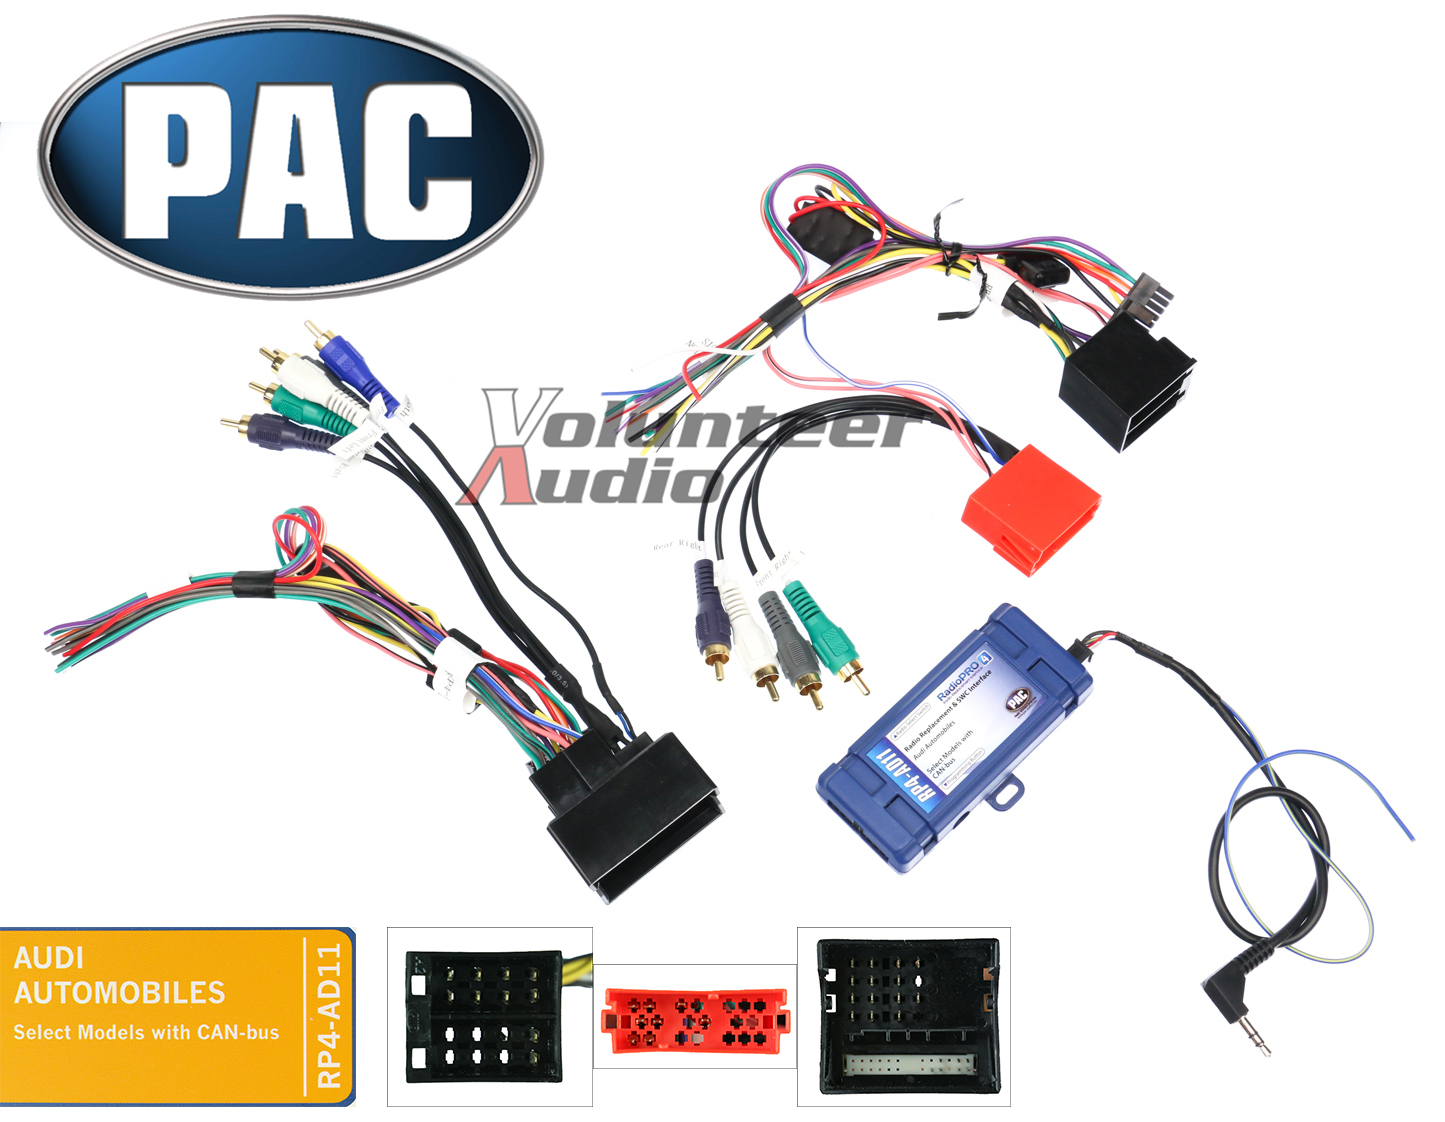 hight resolution of pac rp4 ad11 select audi radio install wiring harness interface details about pac rp4 ad11 select